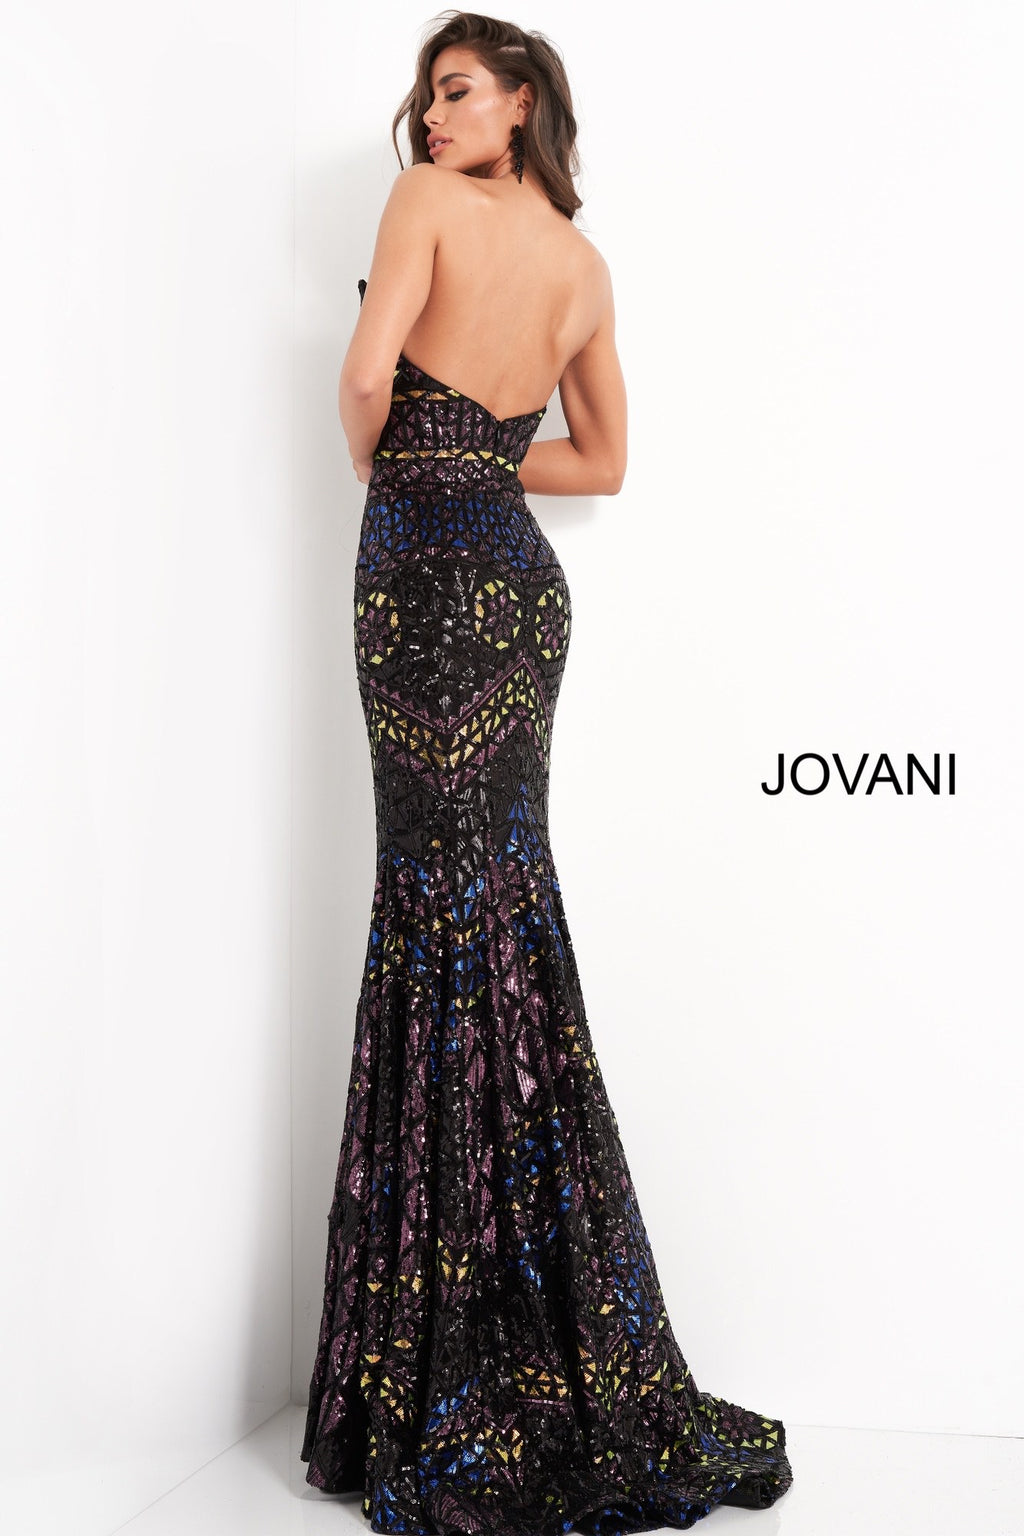 Jovani 04832 Black Multi Embellished Strapless Evening Dress